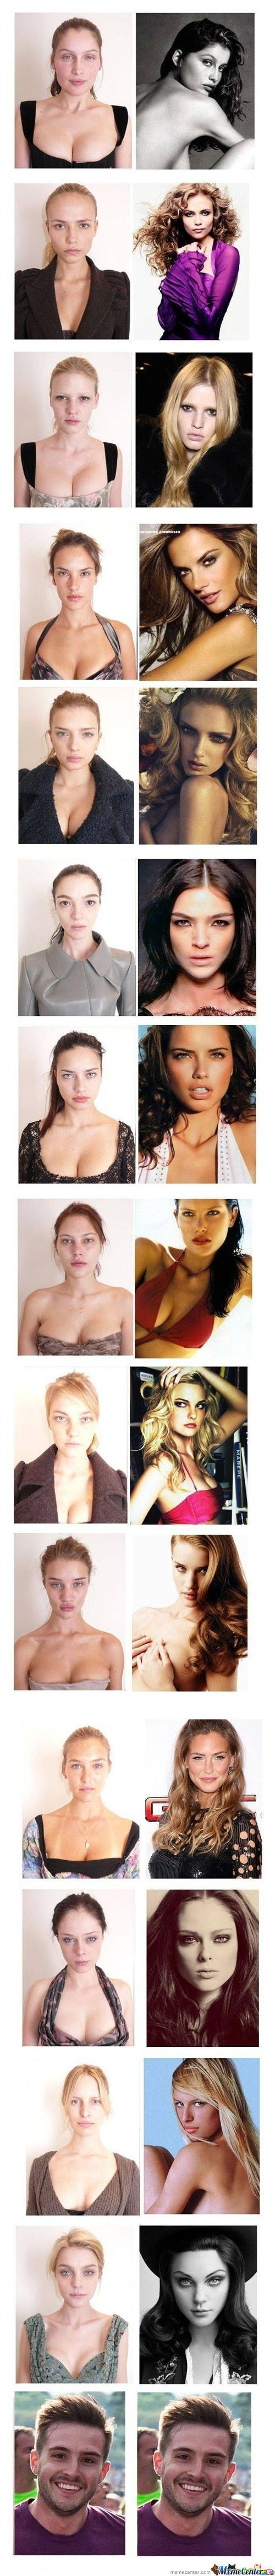 Super Models B4 An After >>> Still Hot